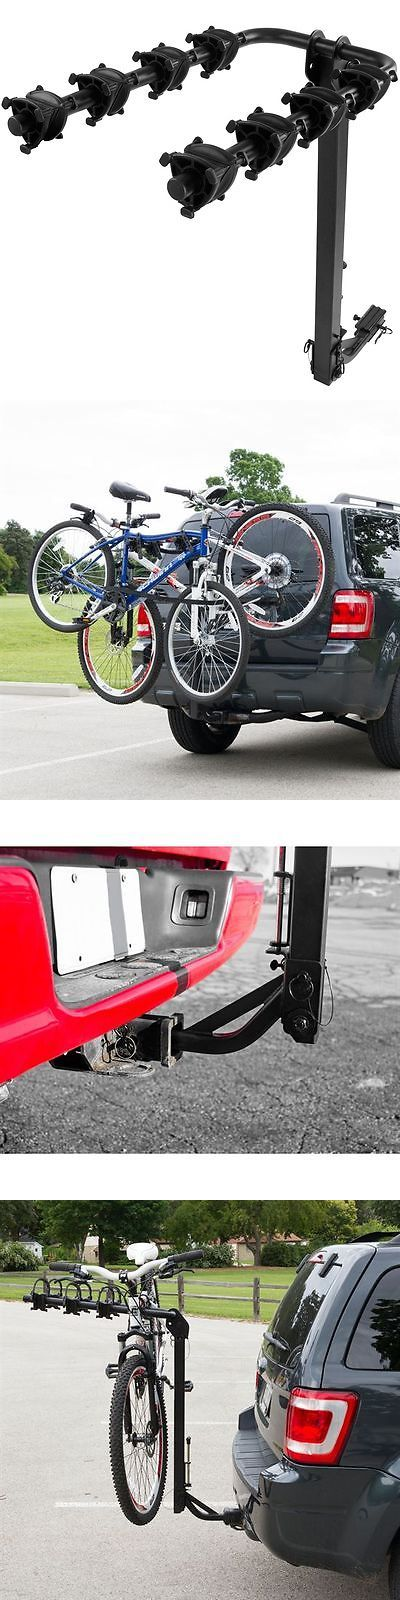 Car and Truck Racks 177849: 4-Bike Hitch Mounted Bike Carrier Rack Class Ii, Iii, Iv -> BUY IT NOW ONLY: $114.99 on eBay!